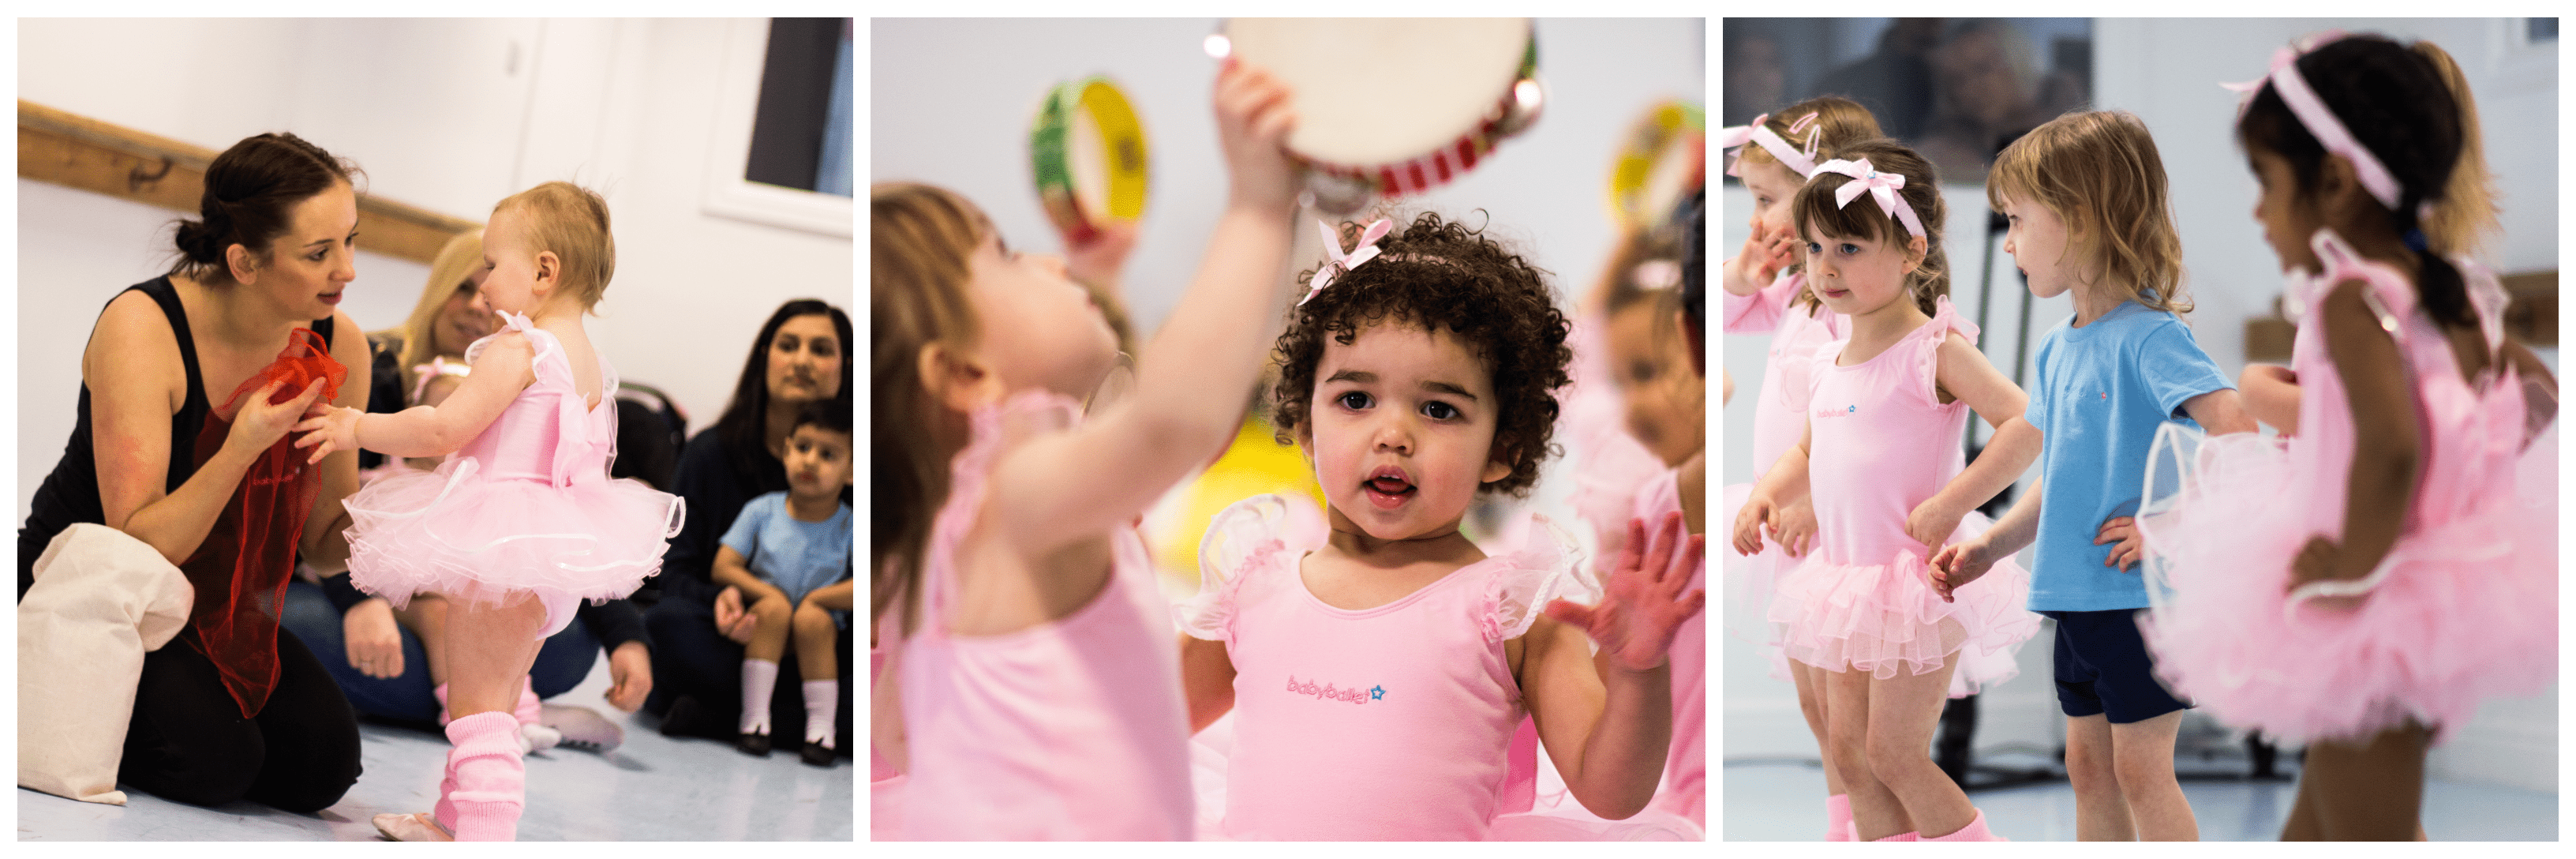 babyballet dance classes Lincoln North